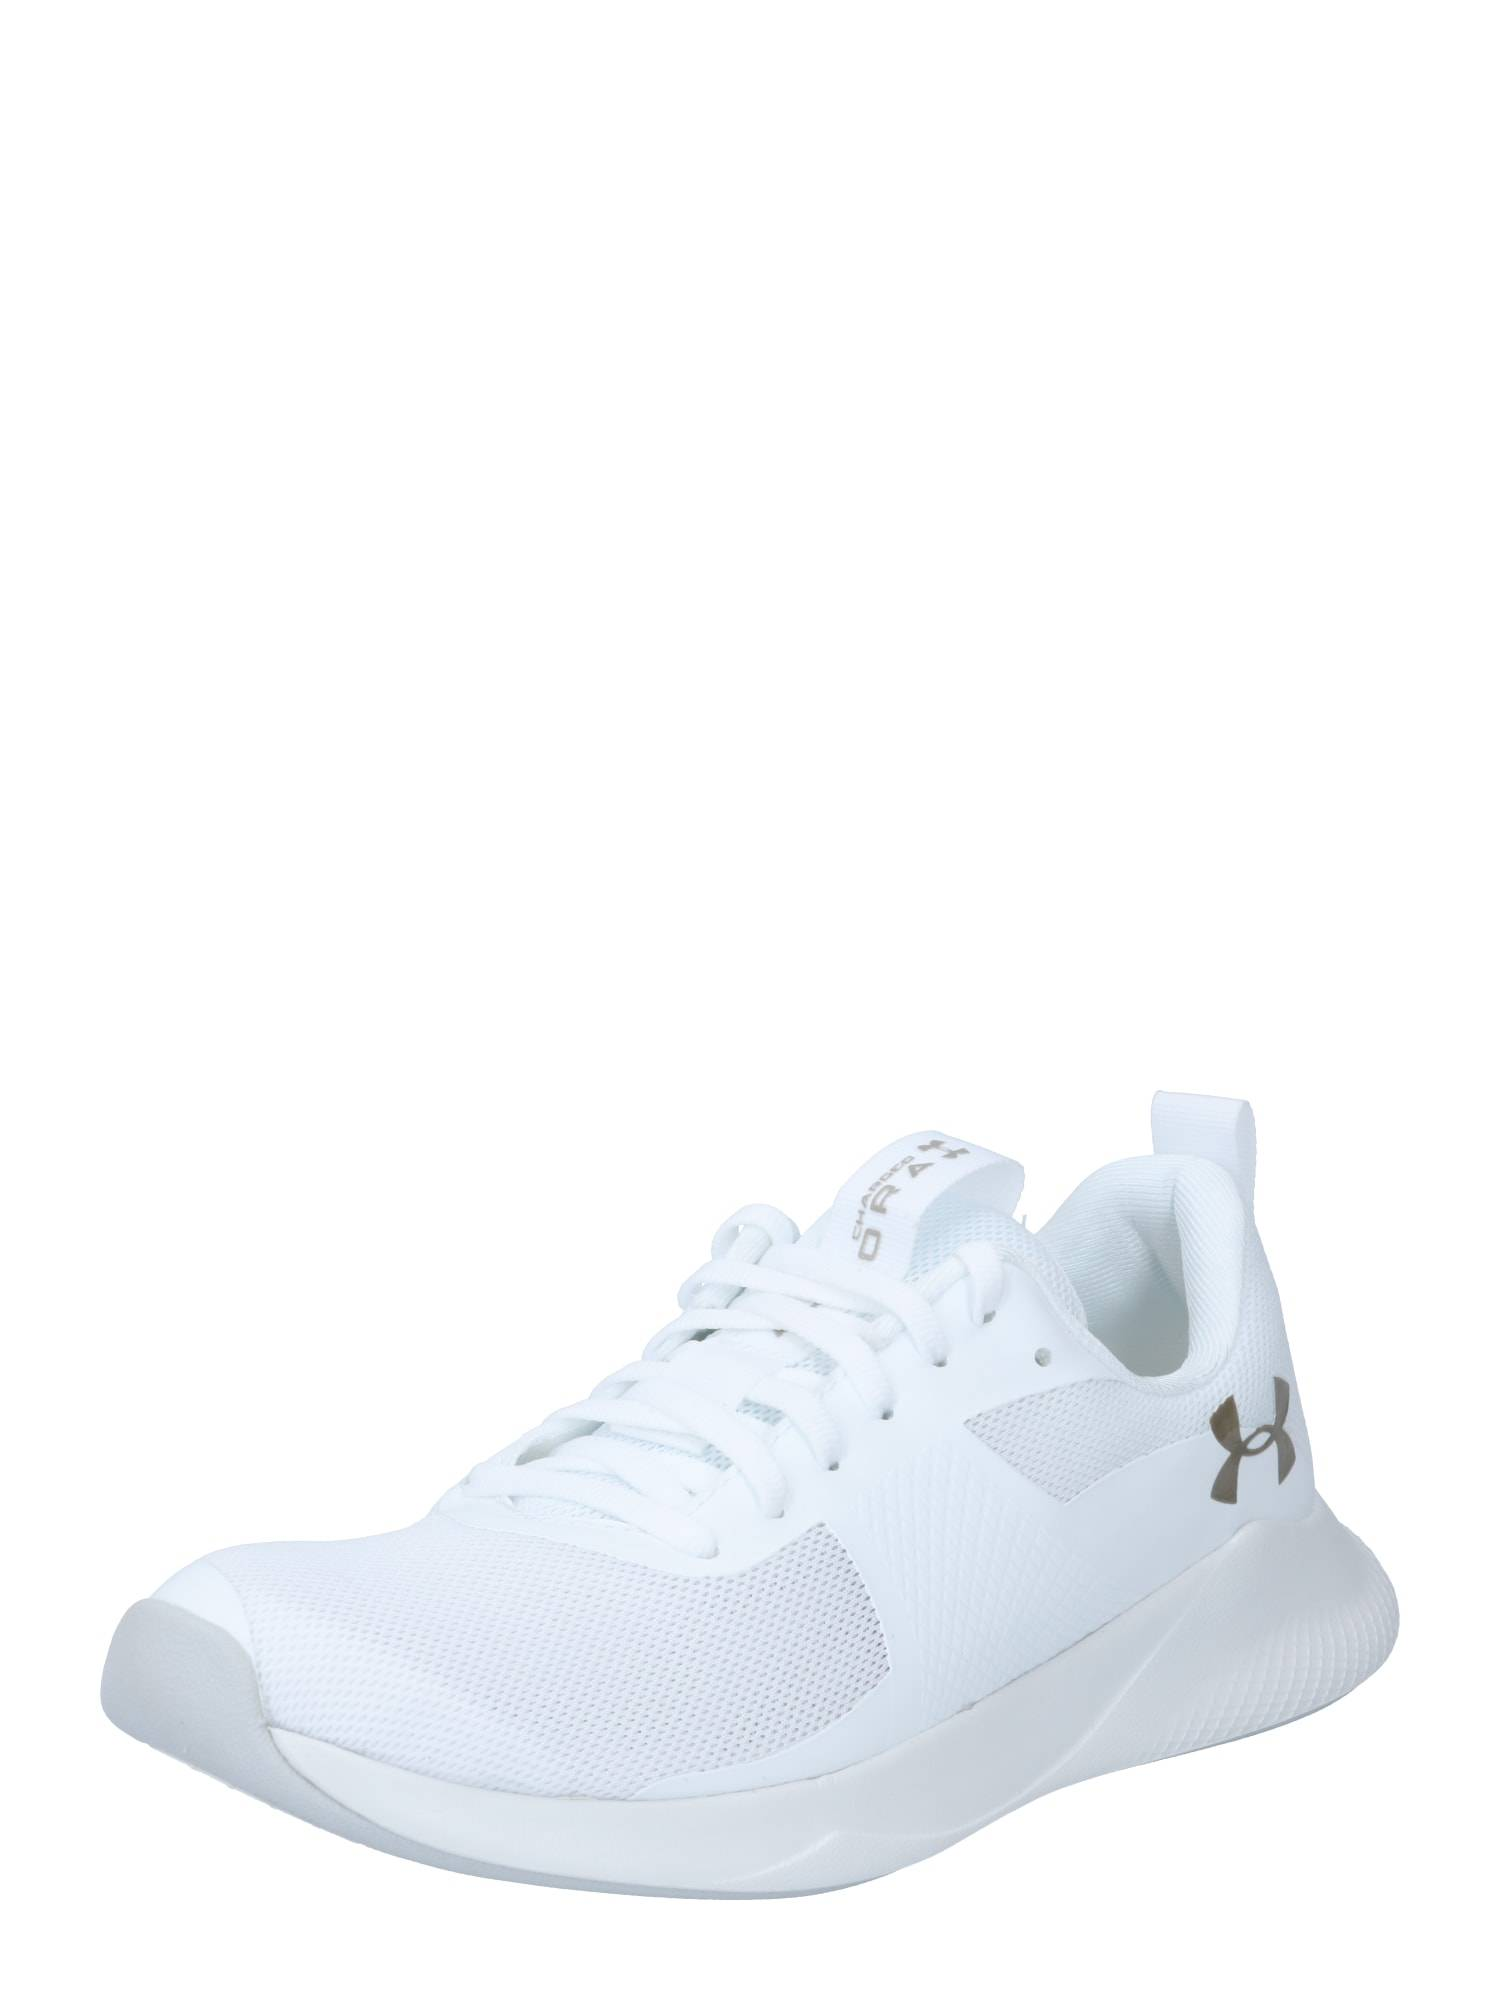 UNDER ARMOUR Chaussure de sport 'UA W Charged Aurora'  - Blanc - Taille: 5 - female